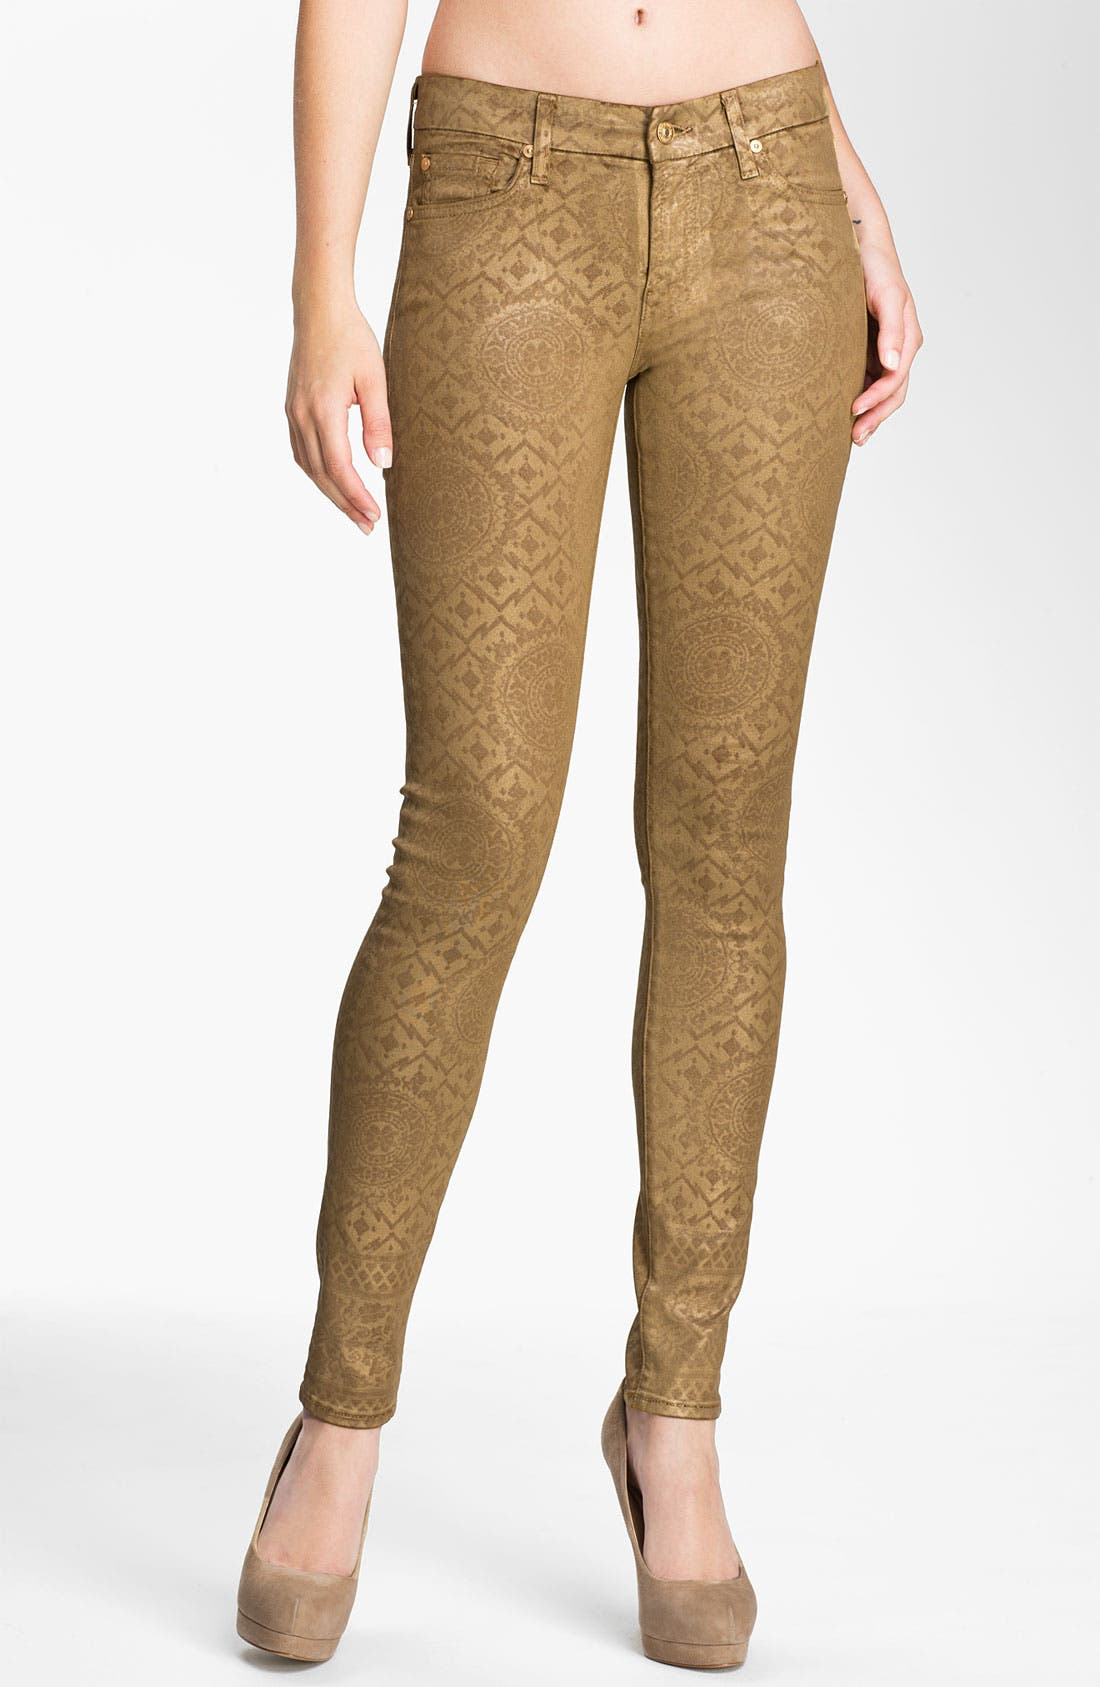 Main Image - 7 For All Mankind® Coated Print Skinny Jeans (Gold Artisan)